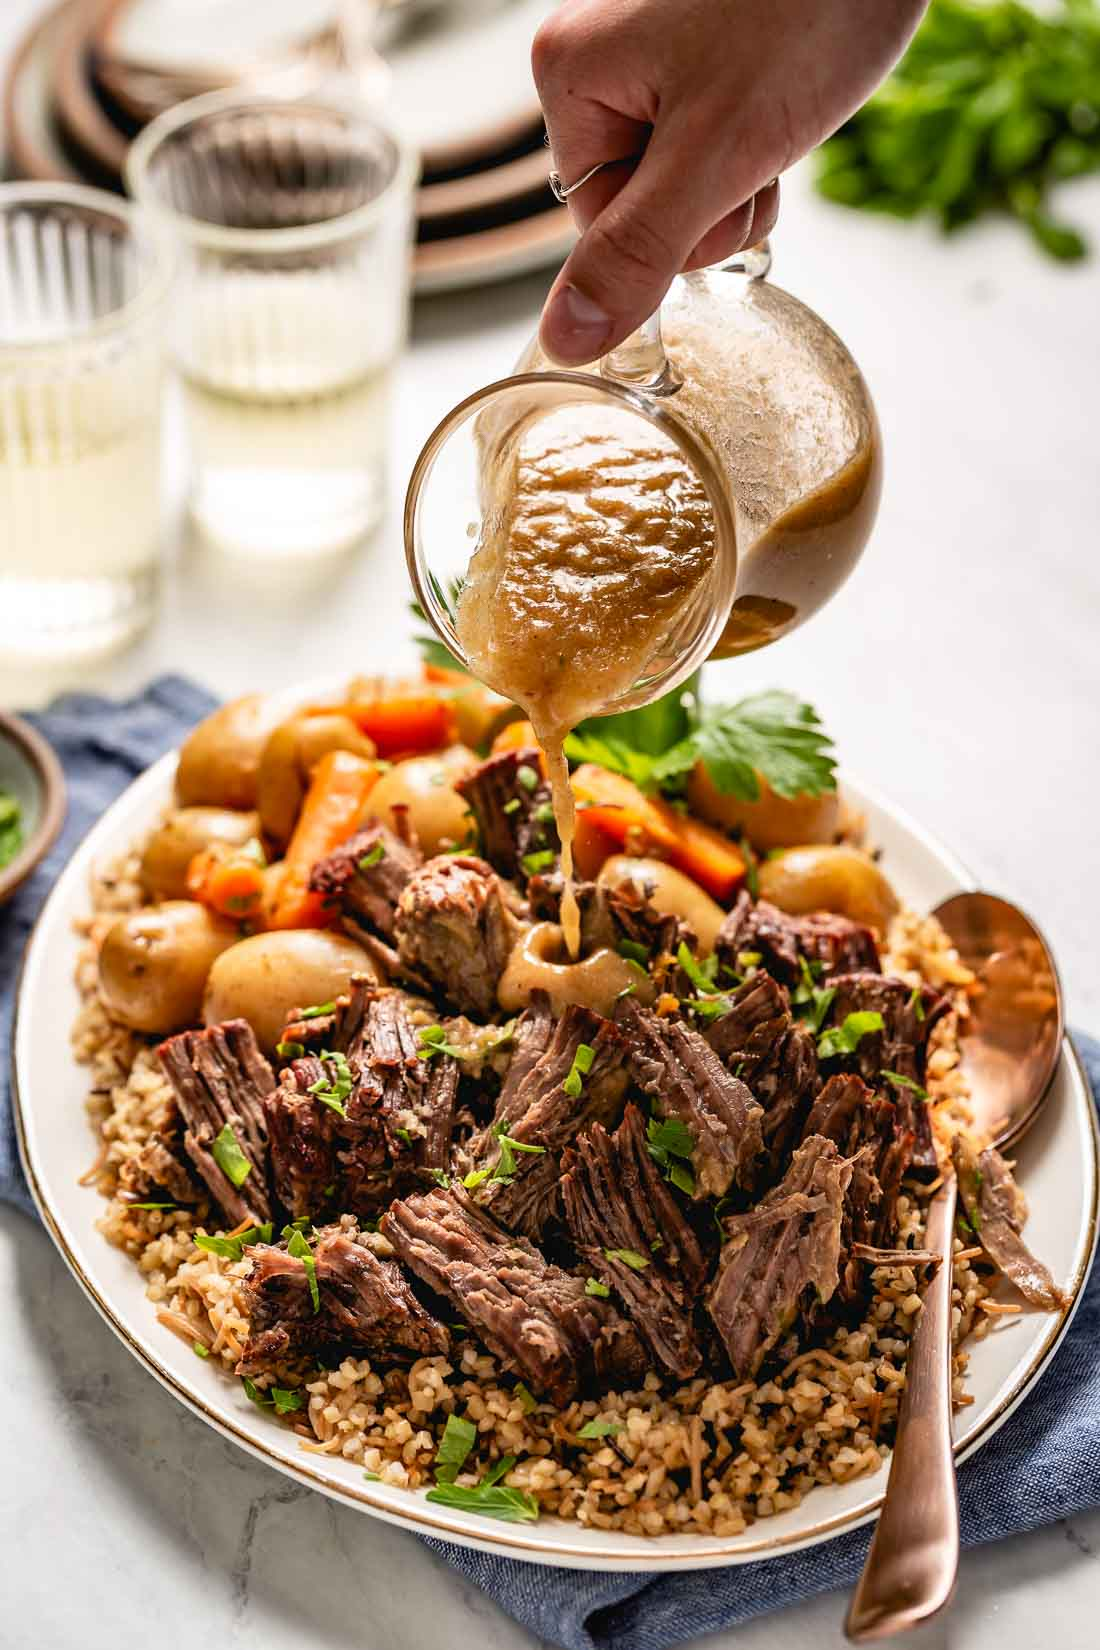 Easy Instant Pot Pot roast and potatoes recipe is photographed from the front view as a woman drizzles it with gravy.